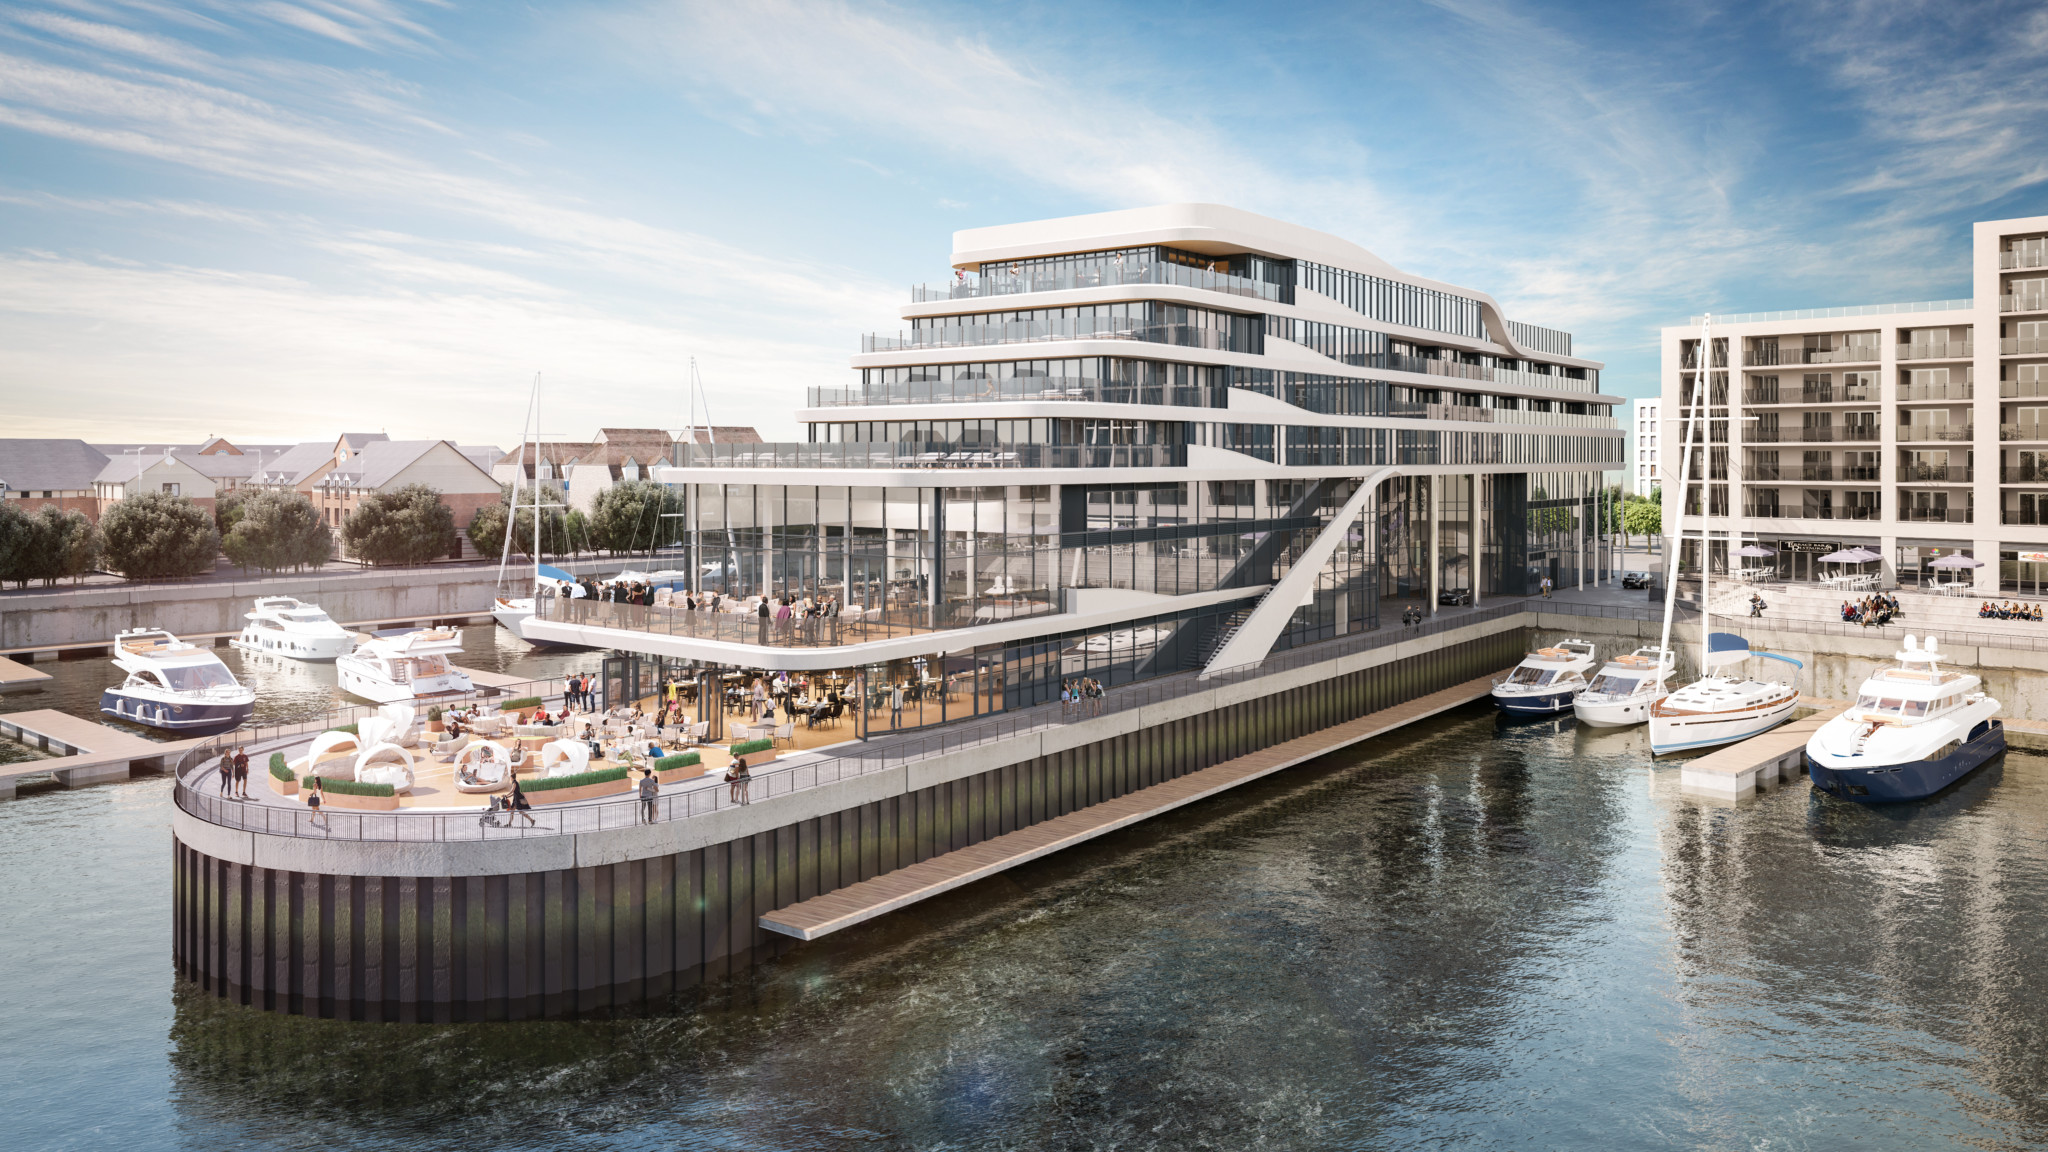 Southampton | All the action from the casino floor: news, views and more